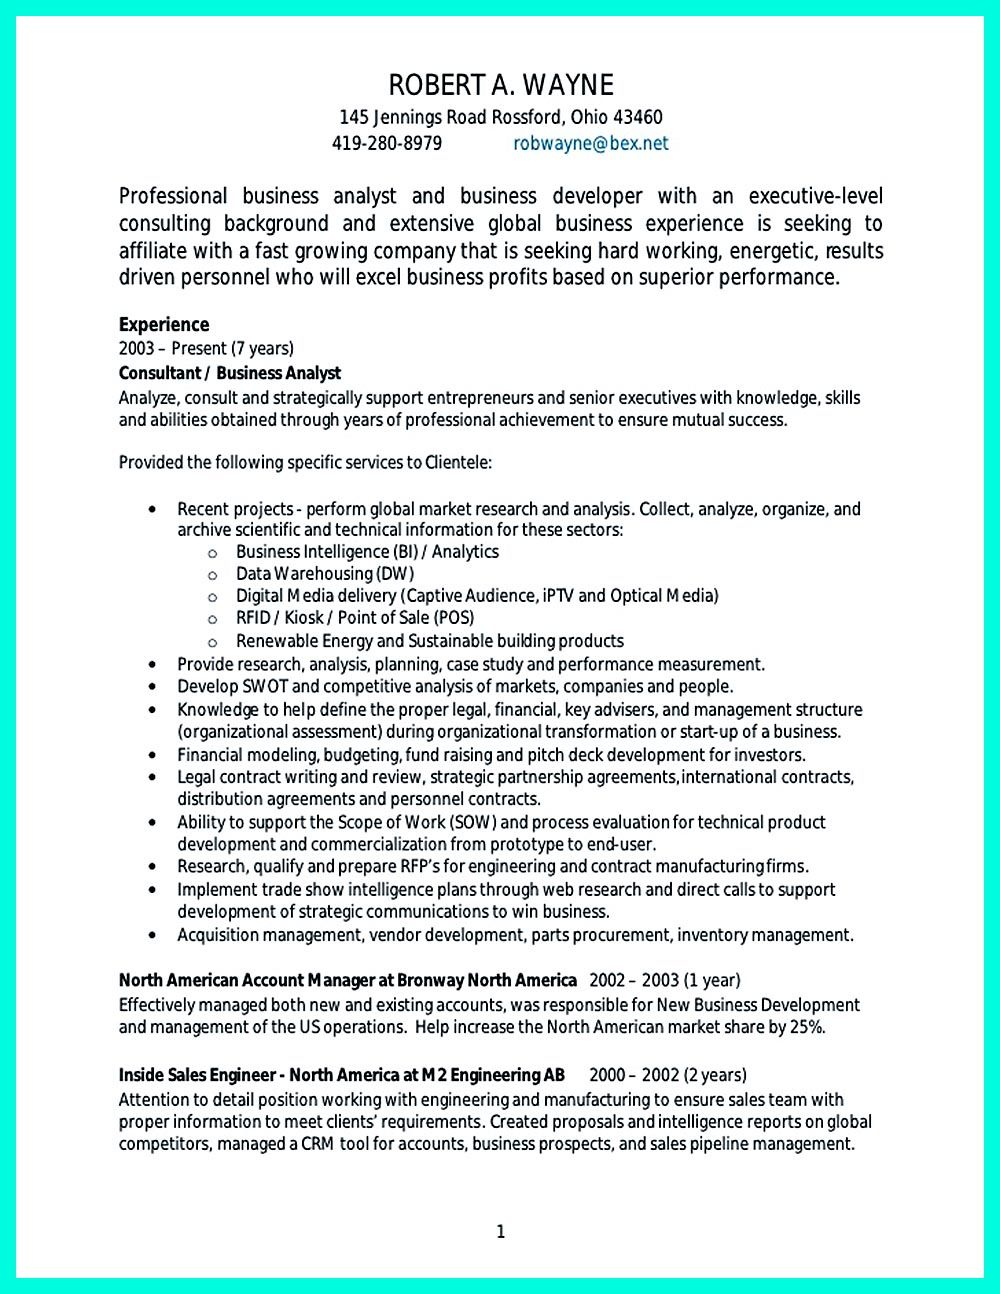 High Quality Data Analyst Resume Sample From Professionals Data Analyst Business Analyst Analyst